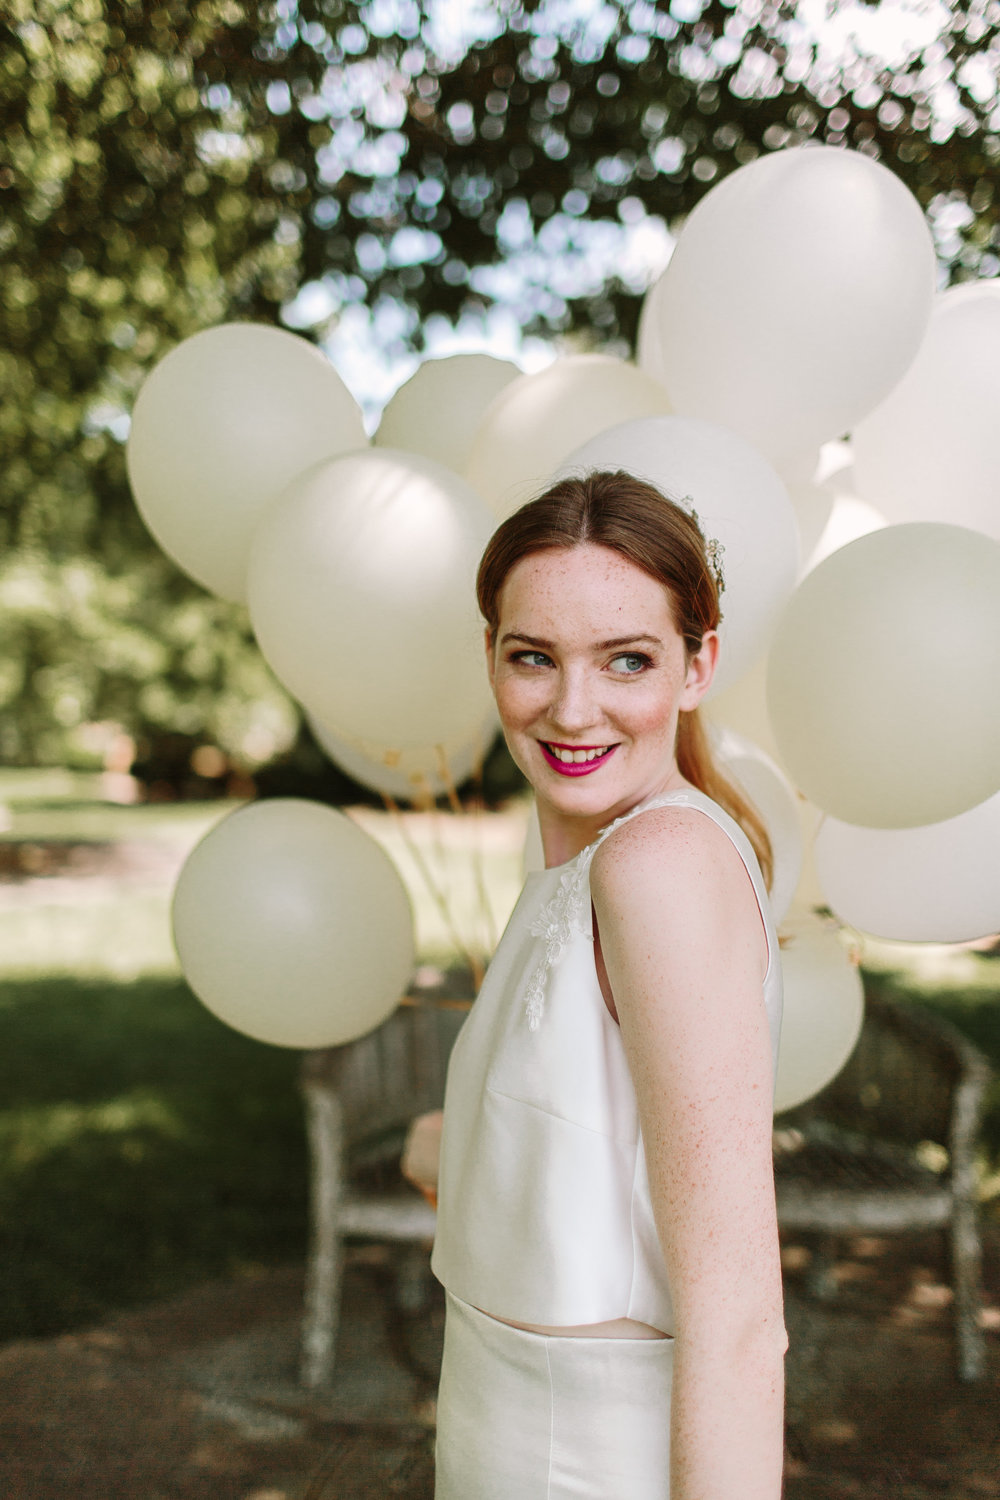 Lace and Liberty Wedding Dresses model with balloons